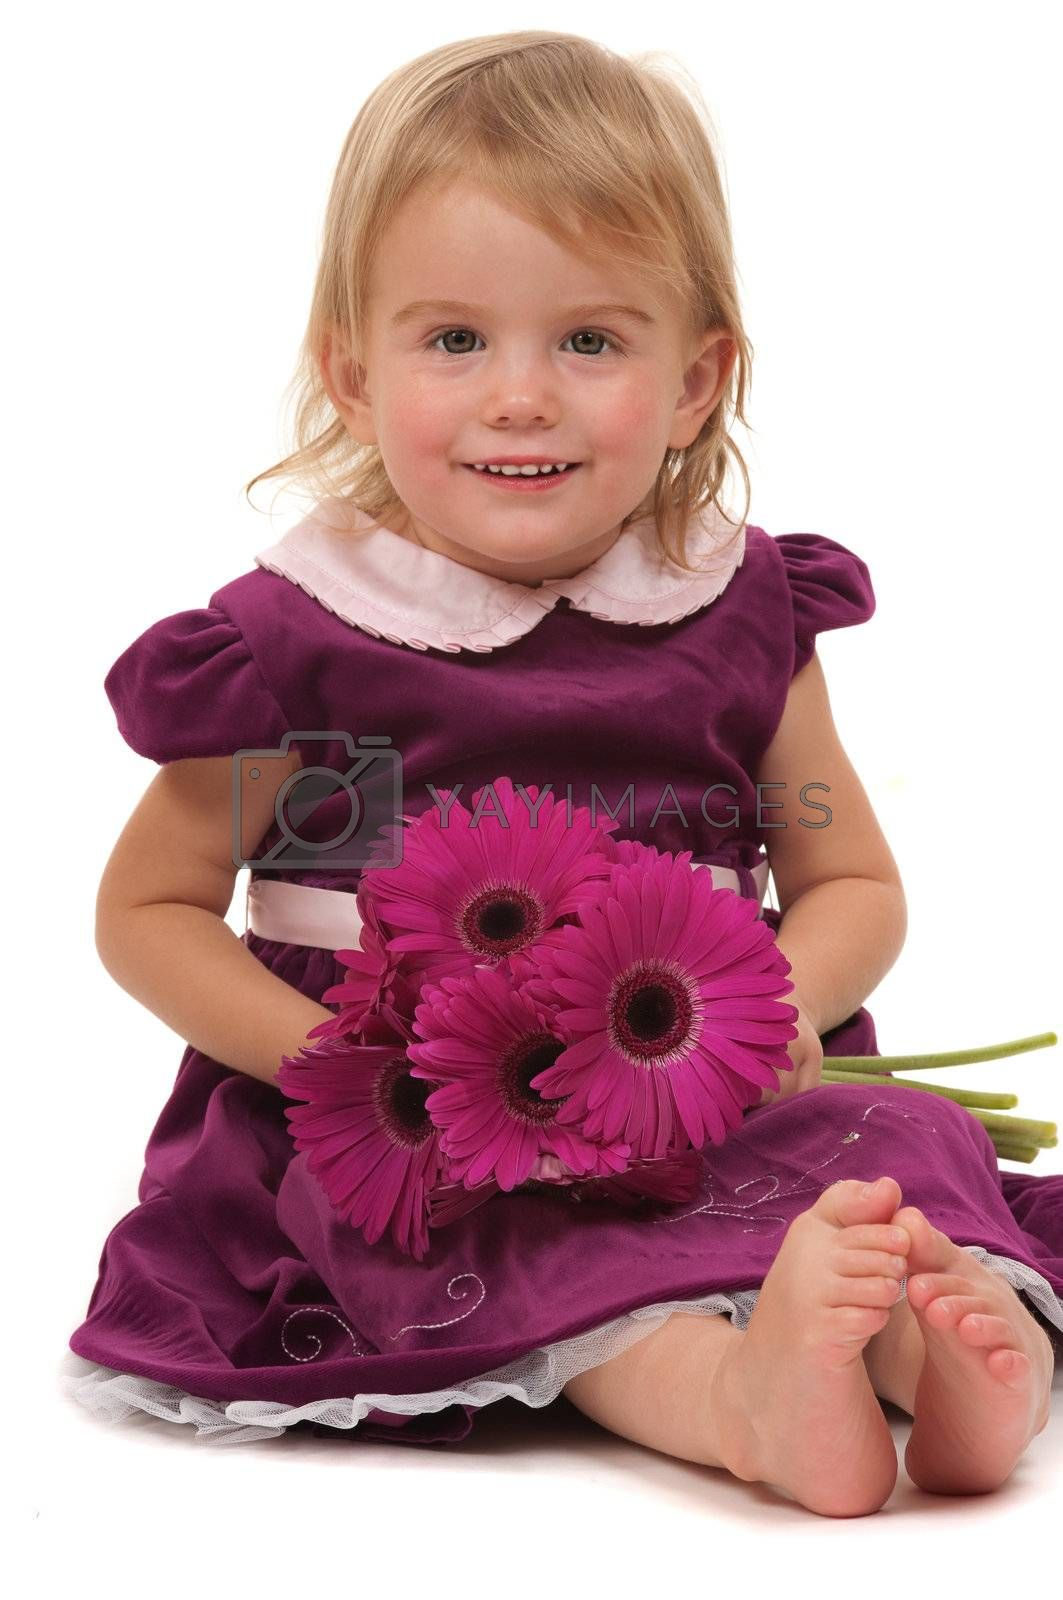 A very cute toddler with flowers